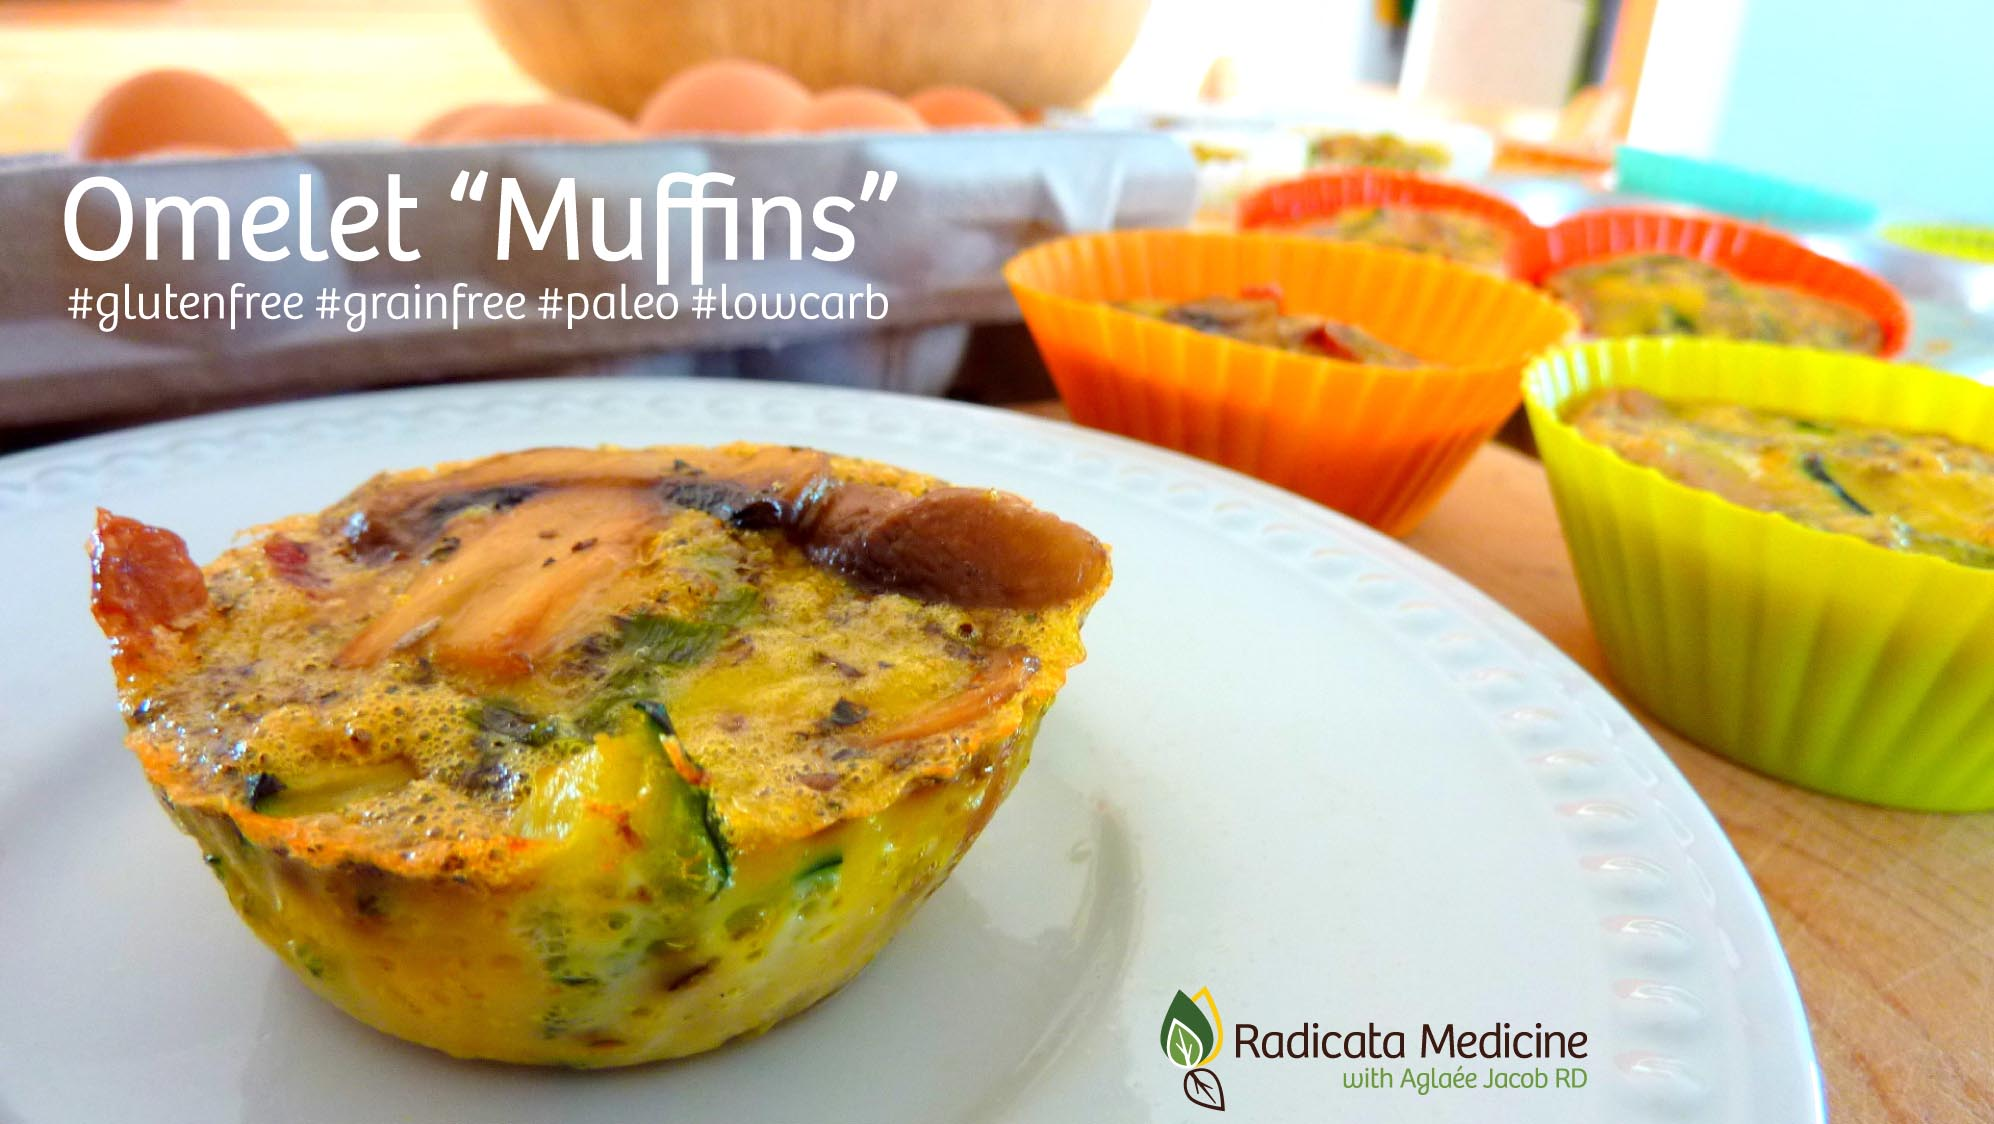 """Omelet """"Muffins"""": grain-free, gluten-free, Paleo, low-carb and made of only REAL food!"""